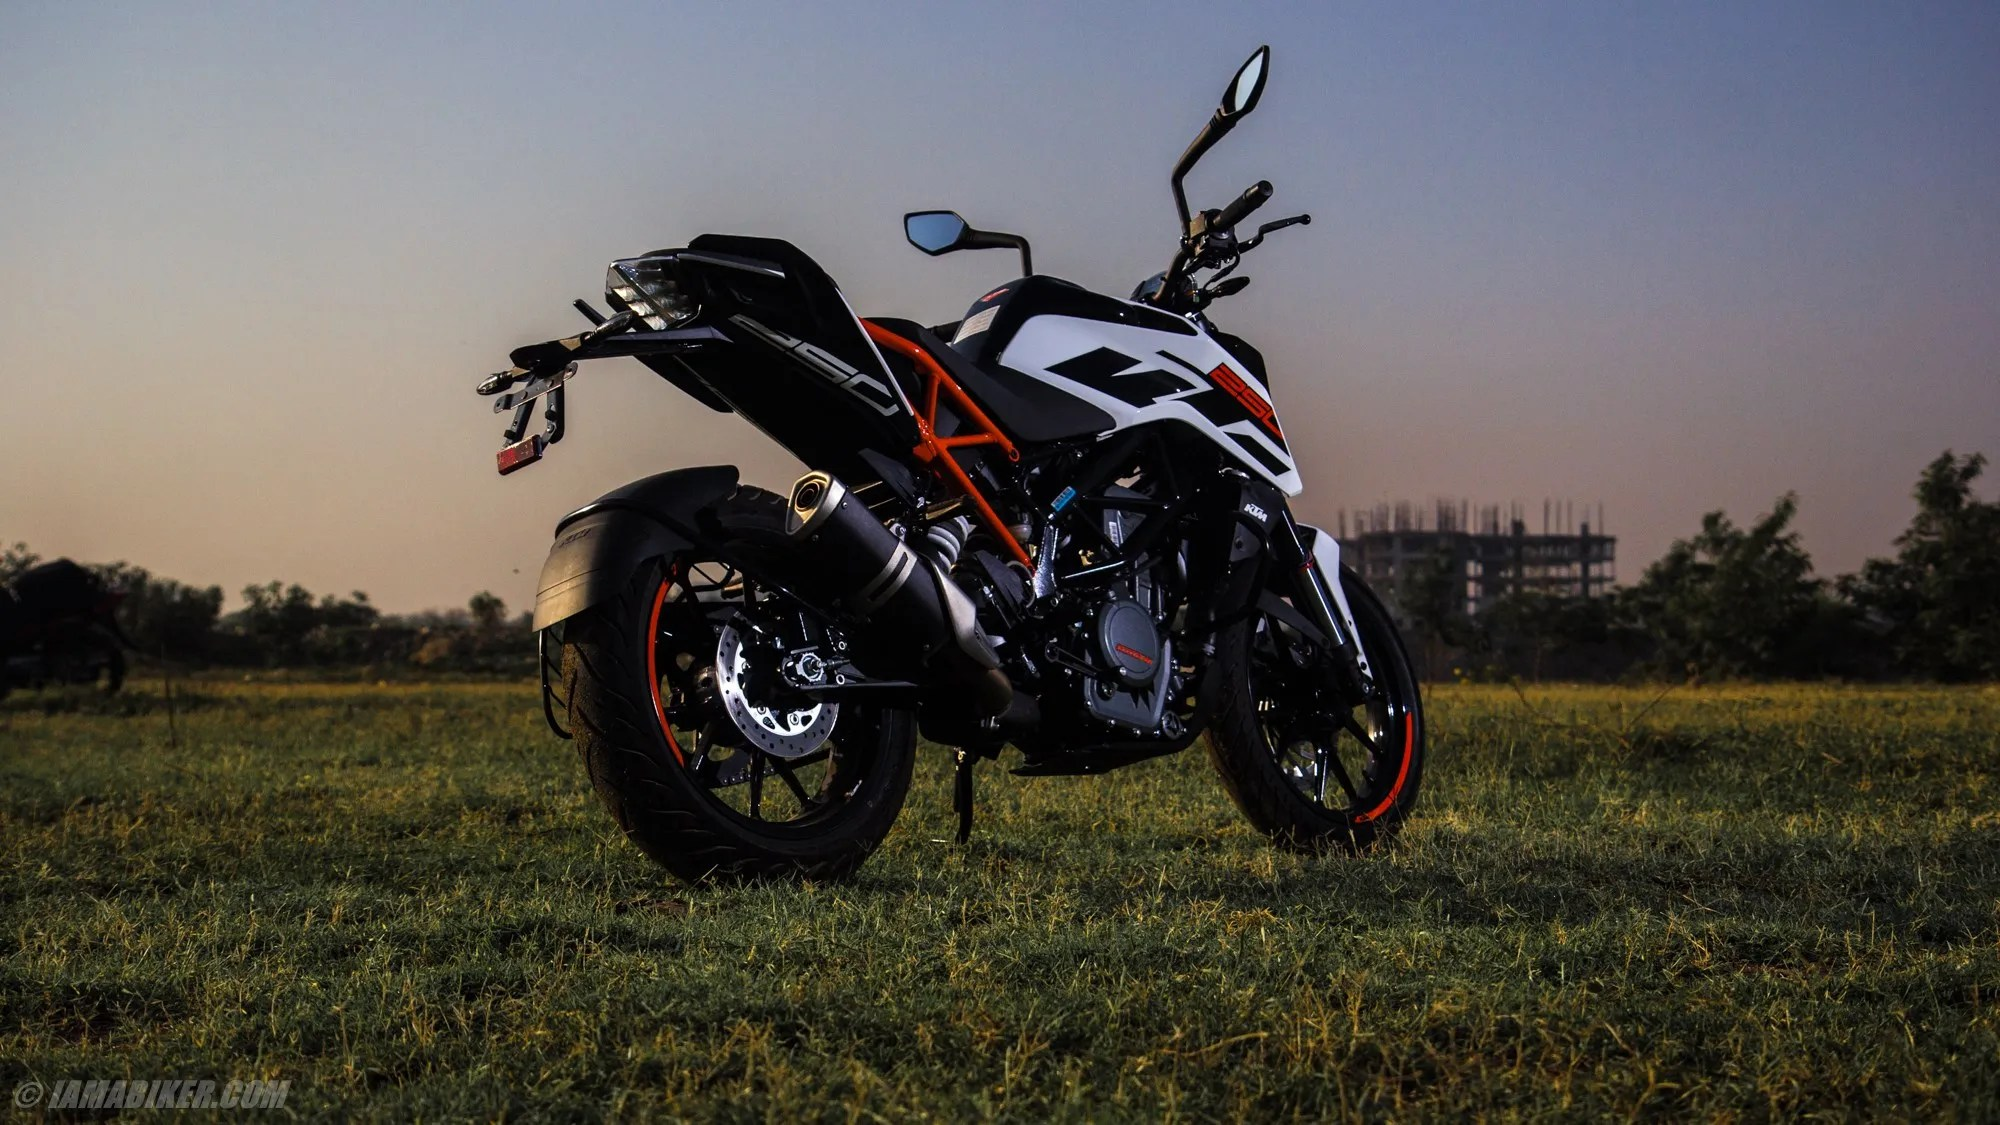 Ktm Duke 250 Hd Wallpapers 4 Iamabiker